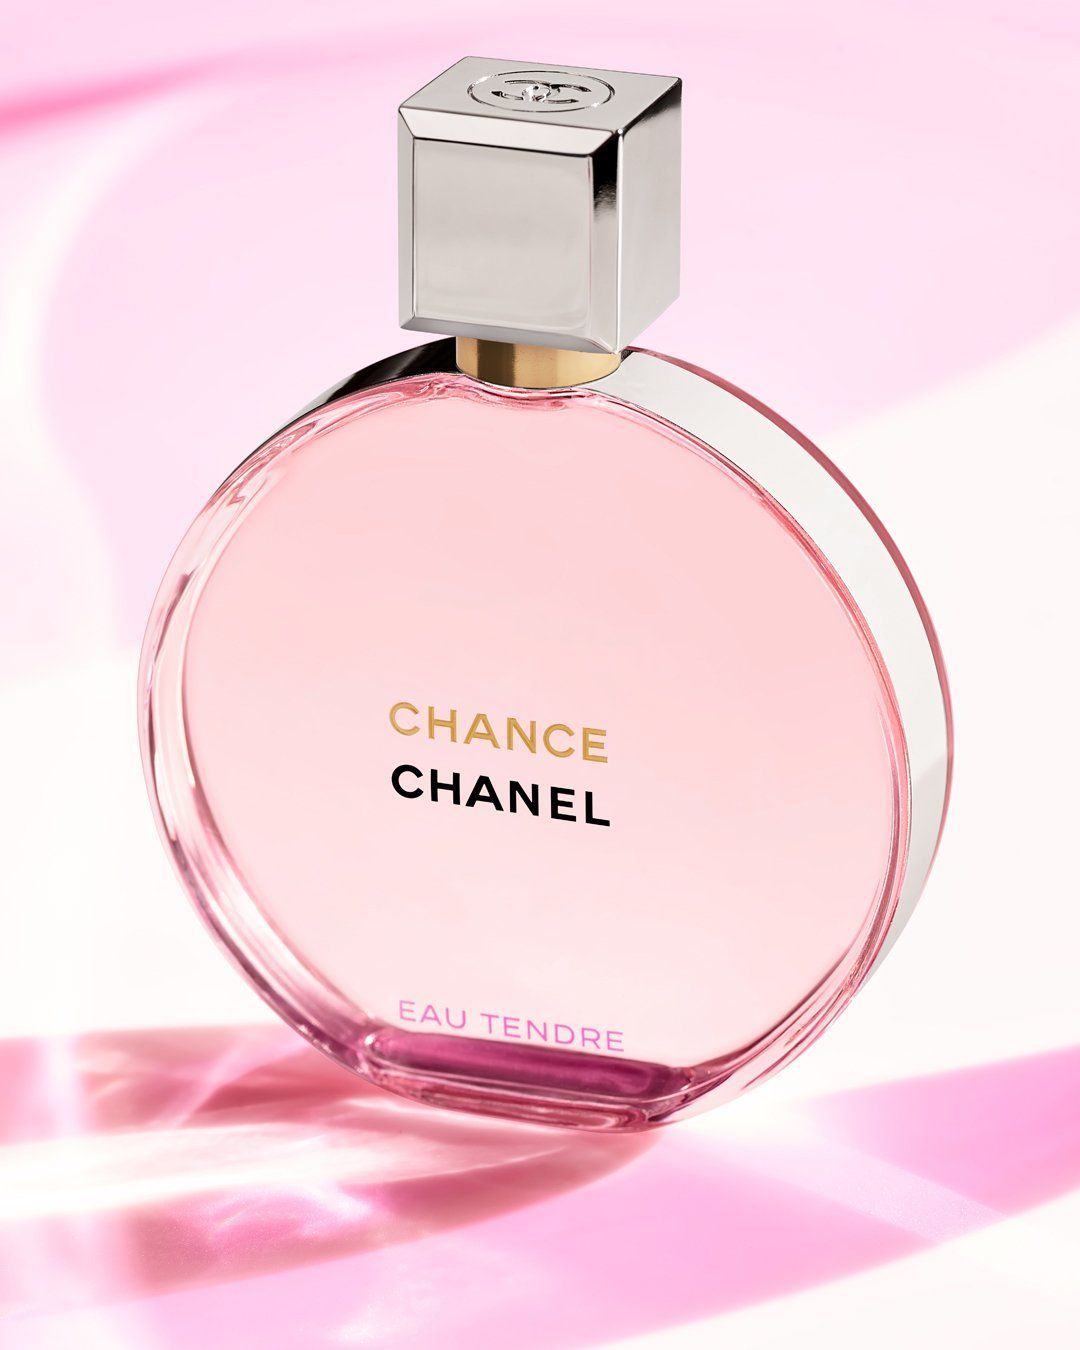 Chanel Chance Eau Tendre Eau De Parfum A Constellation Of Enveloping Notes Of Jasmine Absolute And Rose Essence Dazzle In 2020 Luxury Perfume Perfume Luxury Fragrance